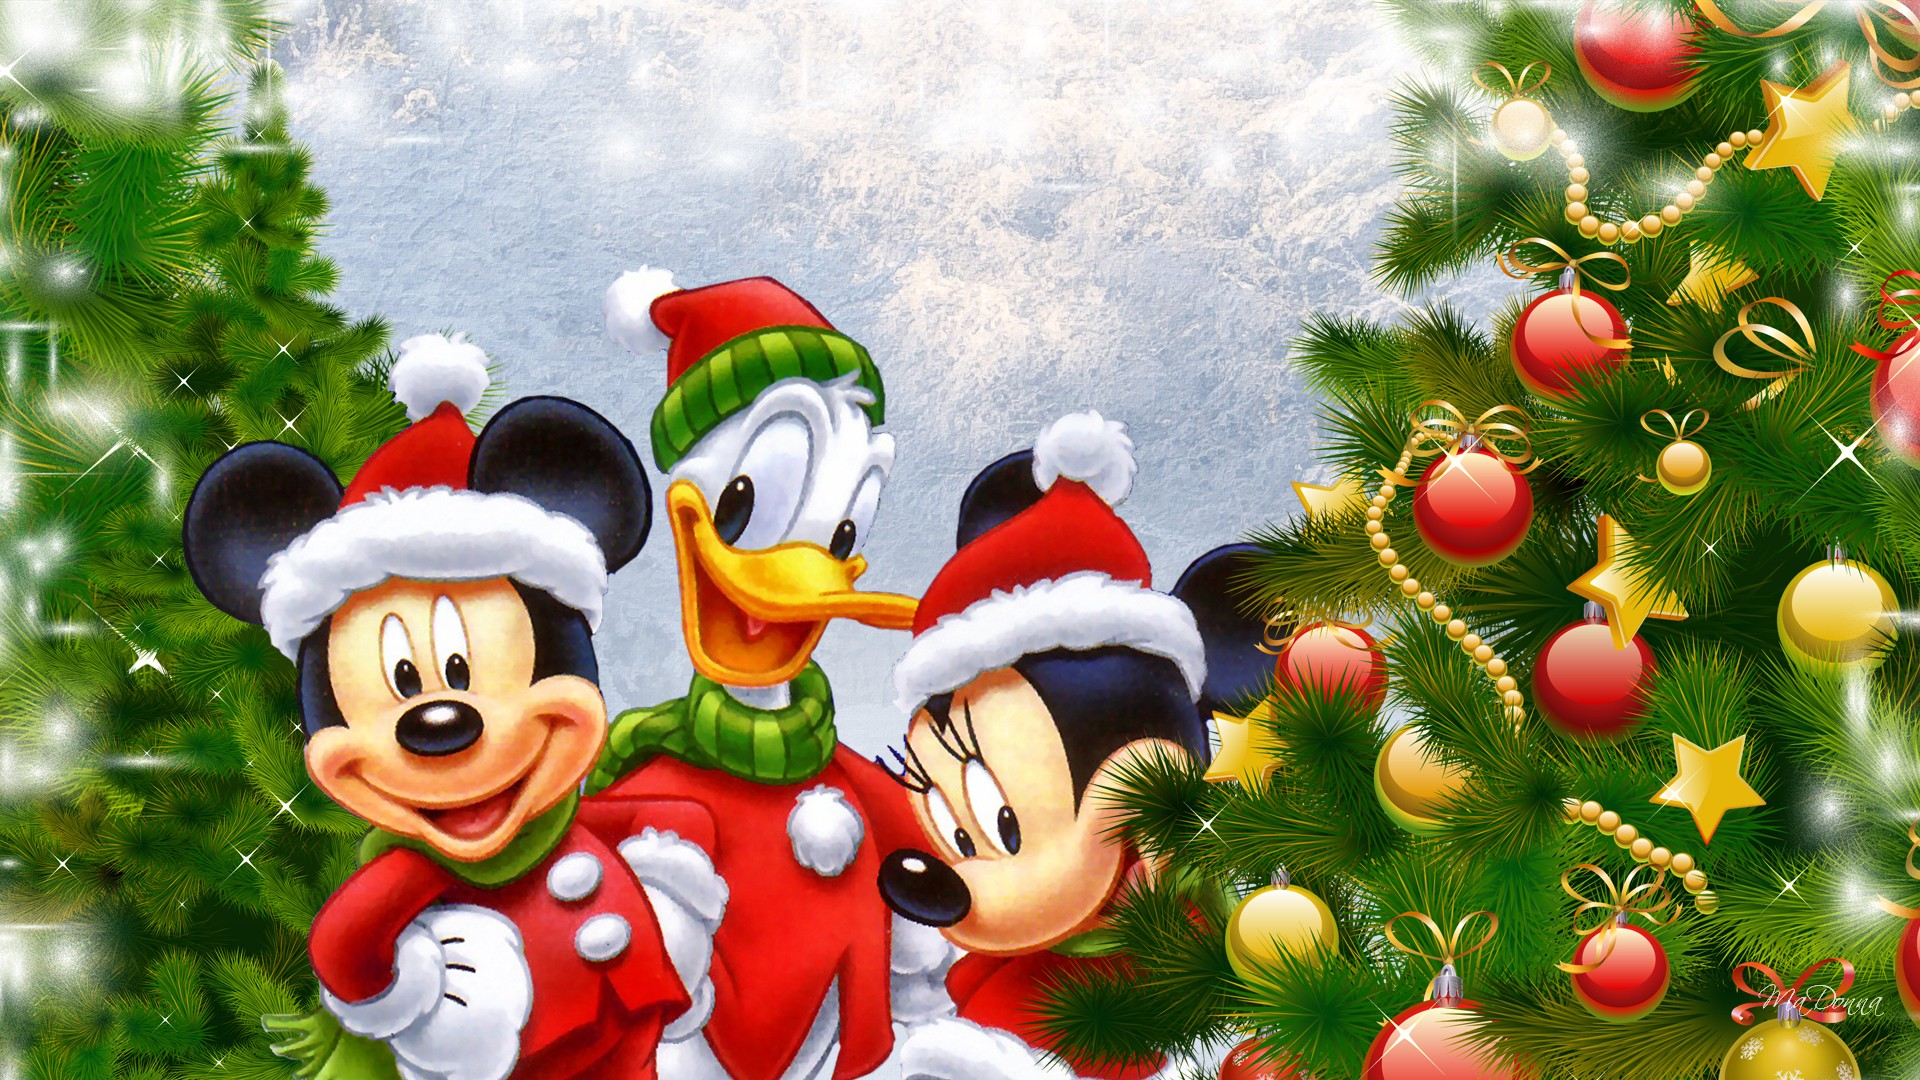 Walt Disney Christmas Wallpaper.76 Disney Christmas Wallpapers On Wallpapersafari